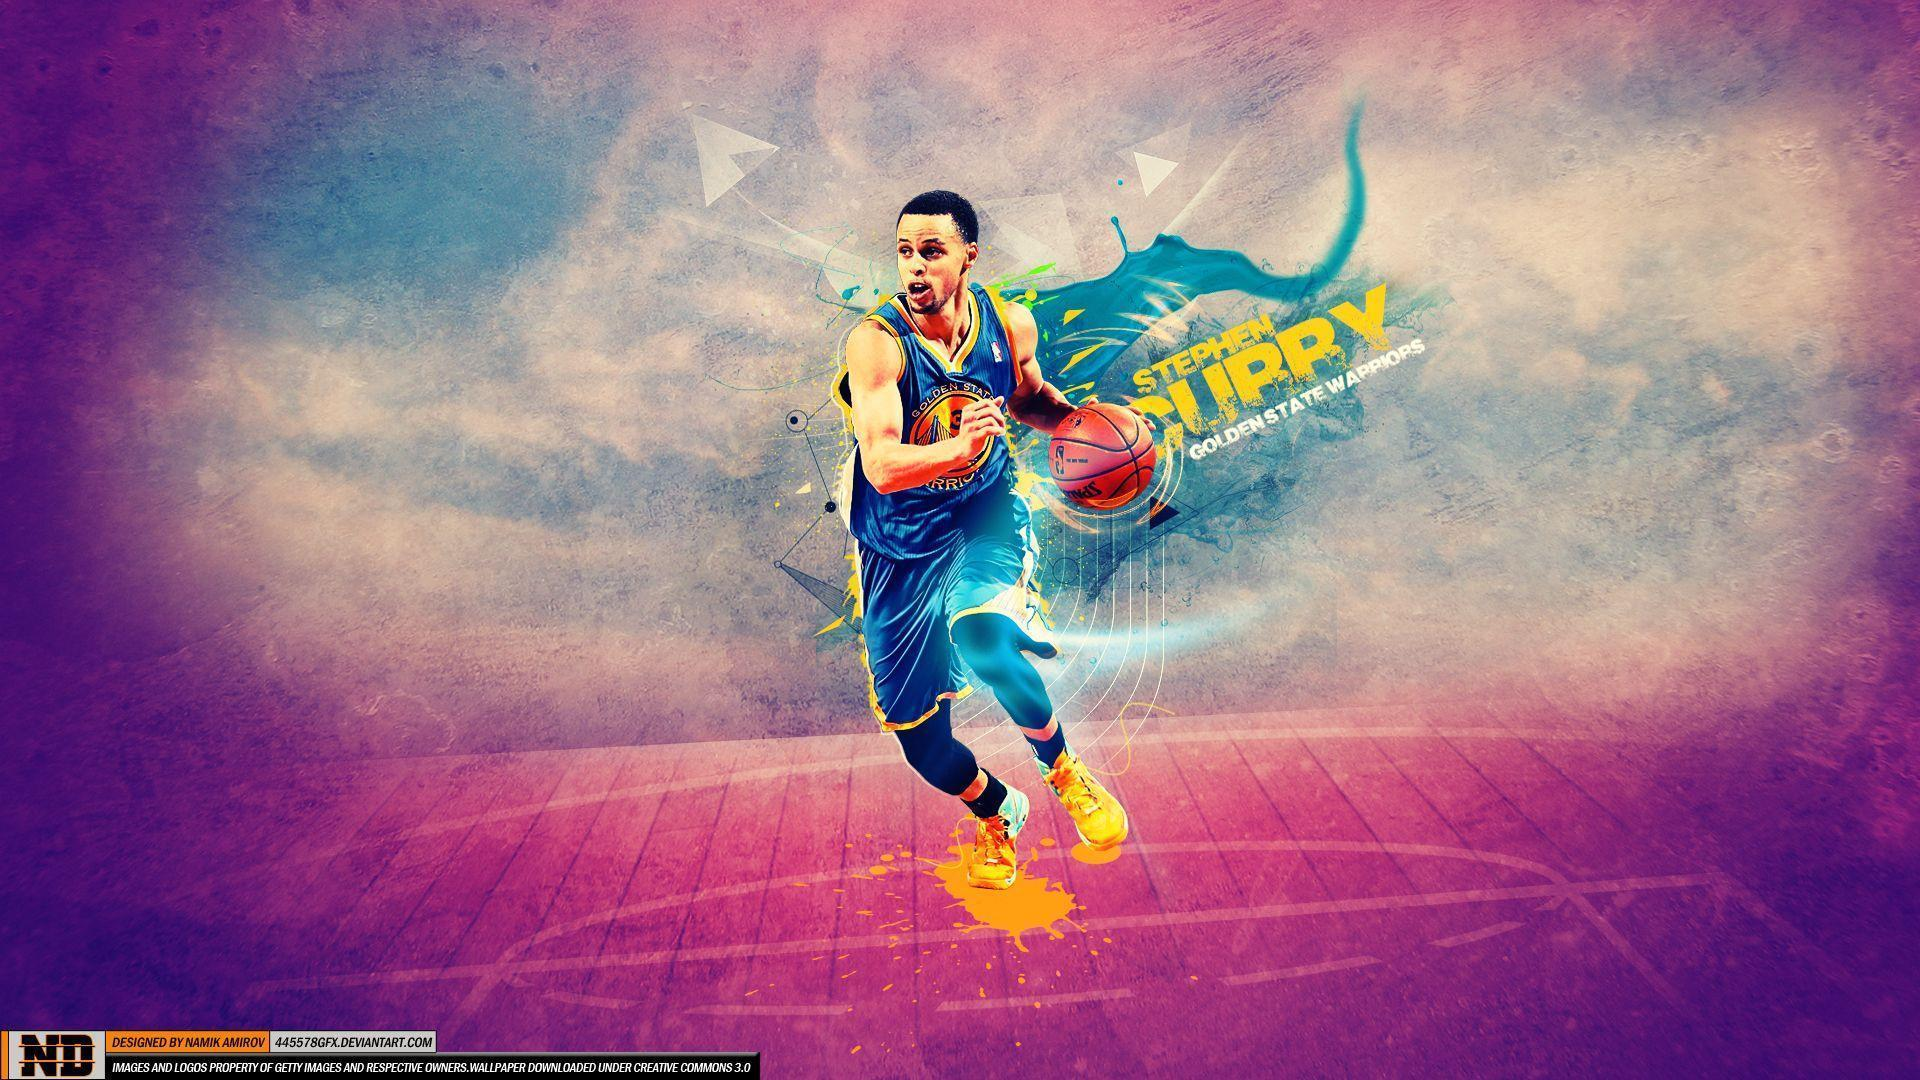 Stephen Curry Wallpapers 1920x1080